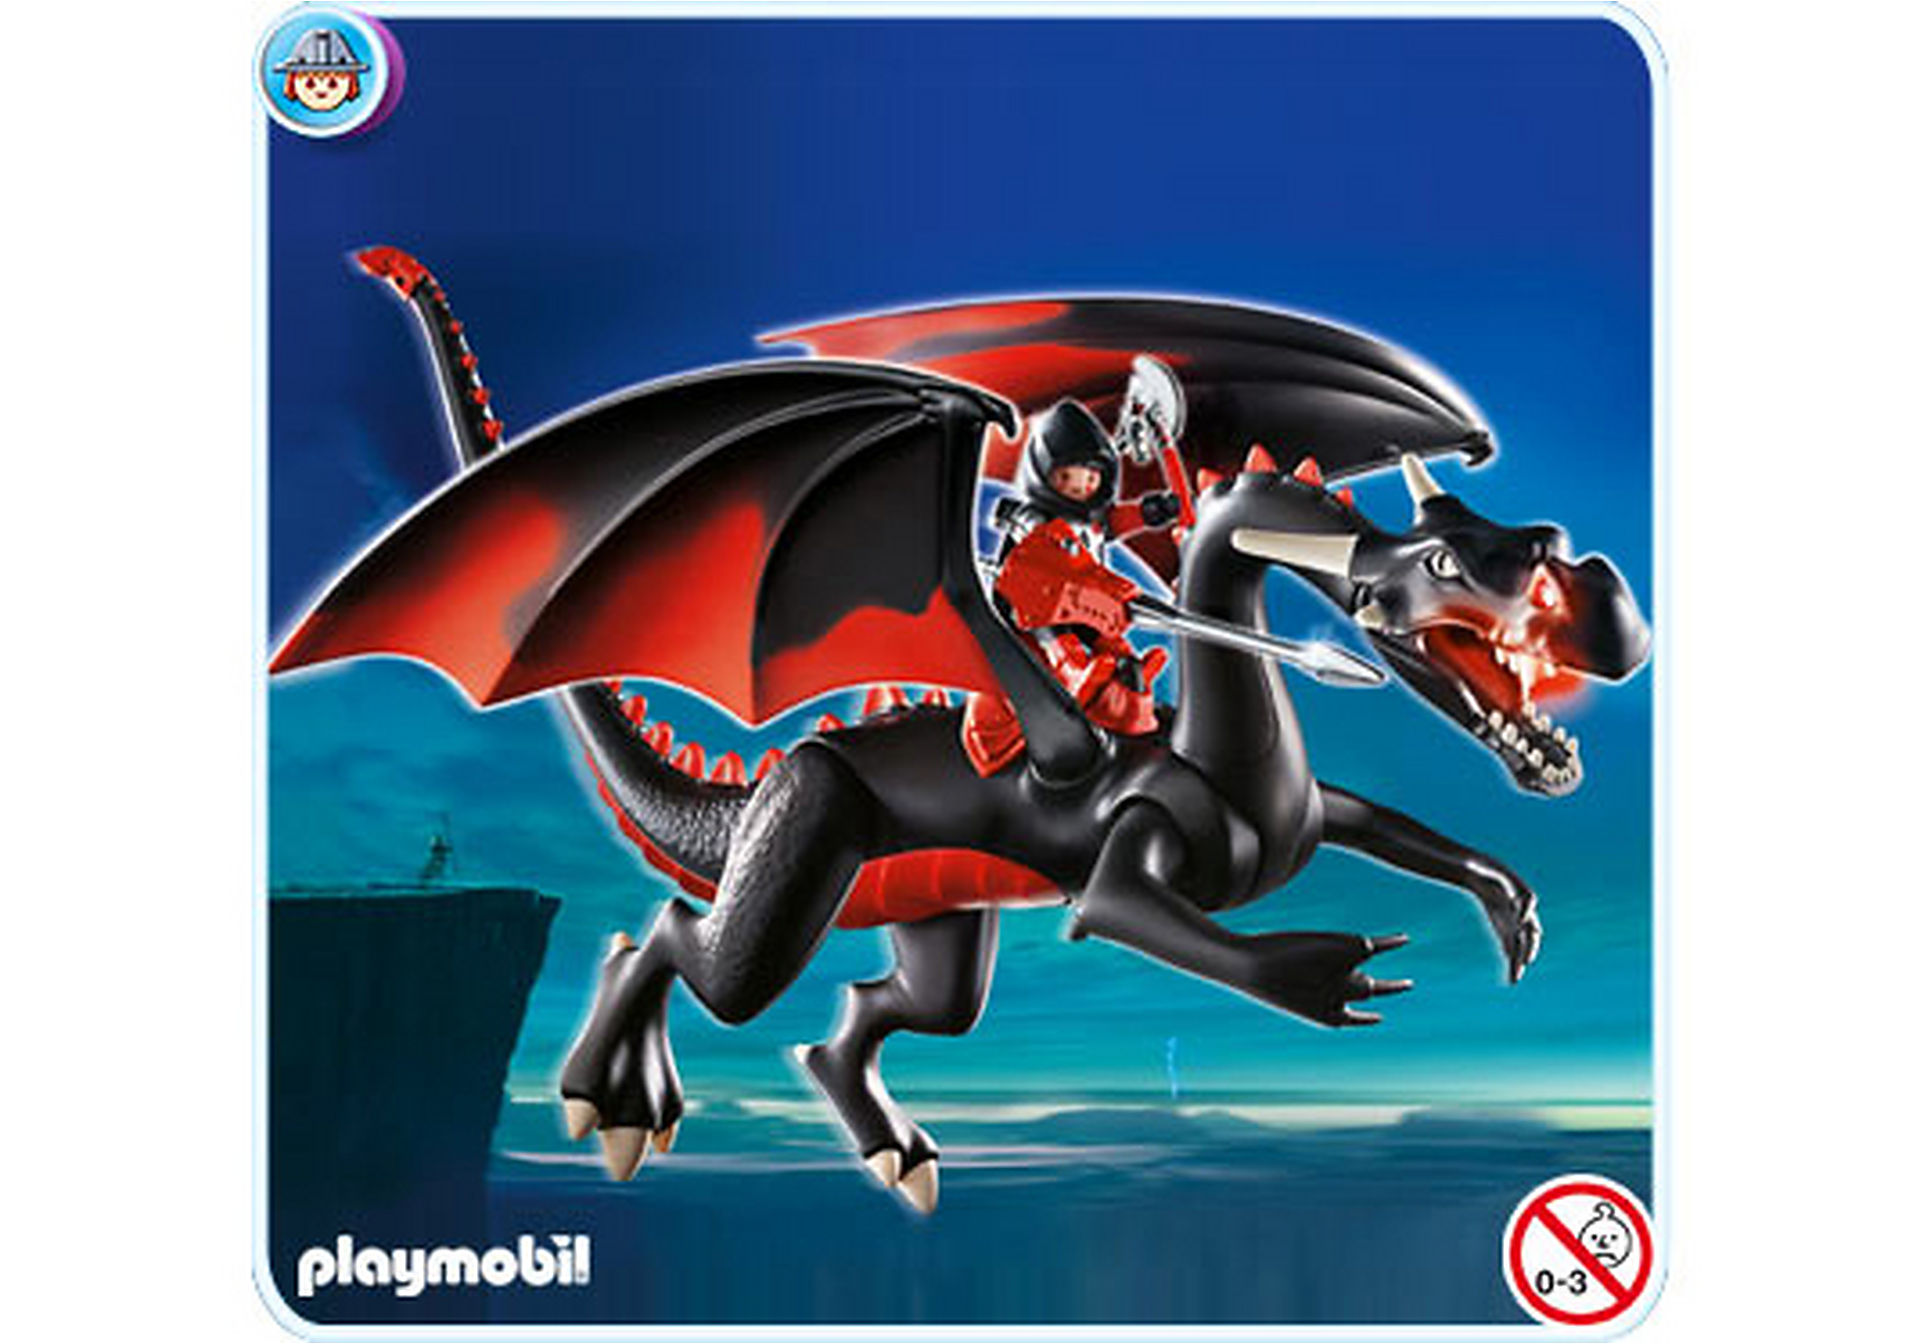 http://media.playmobil.com/i/playmobil/4838-A_product_detail/Riesendrache mit Feuer-LED